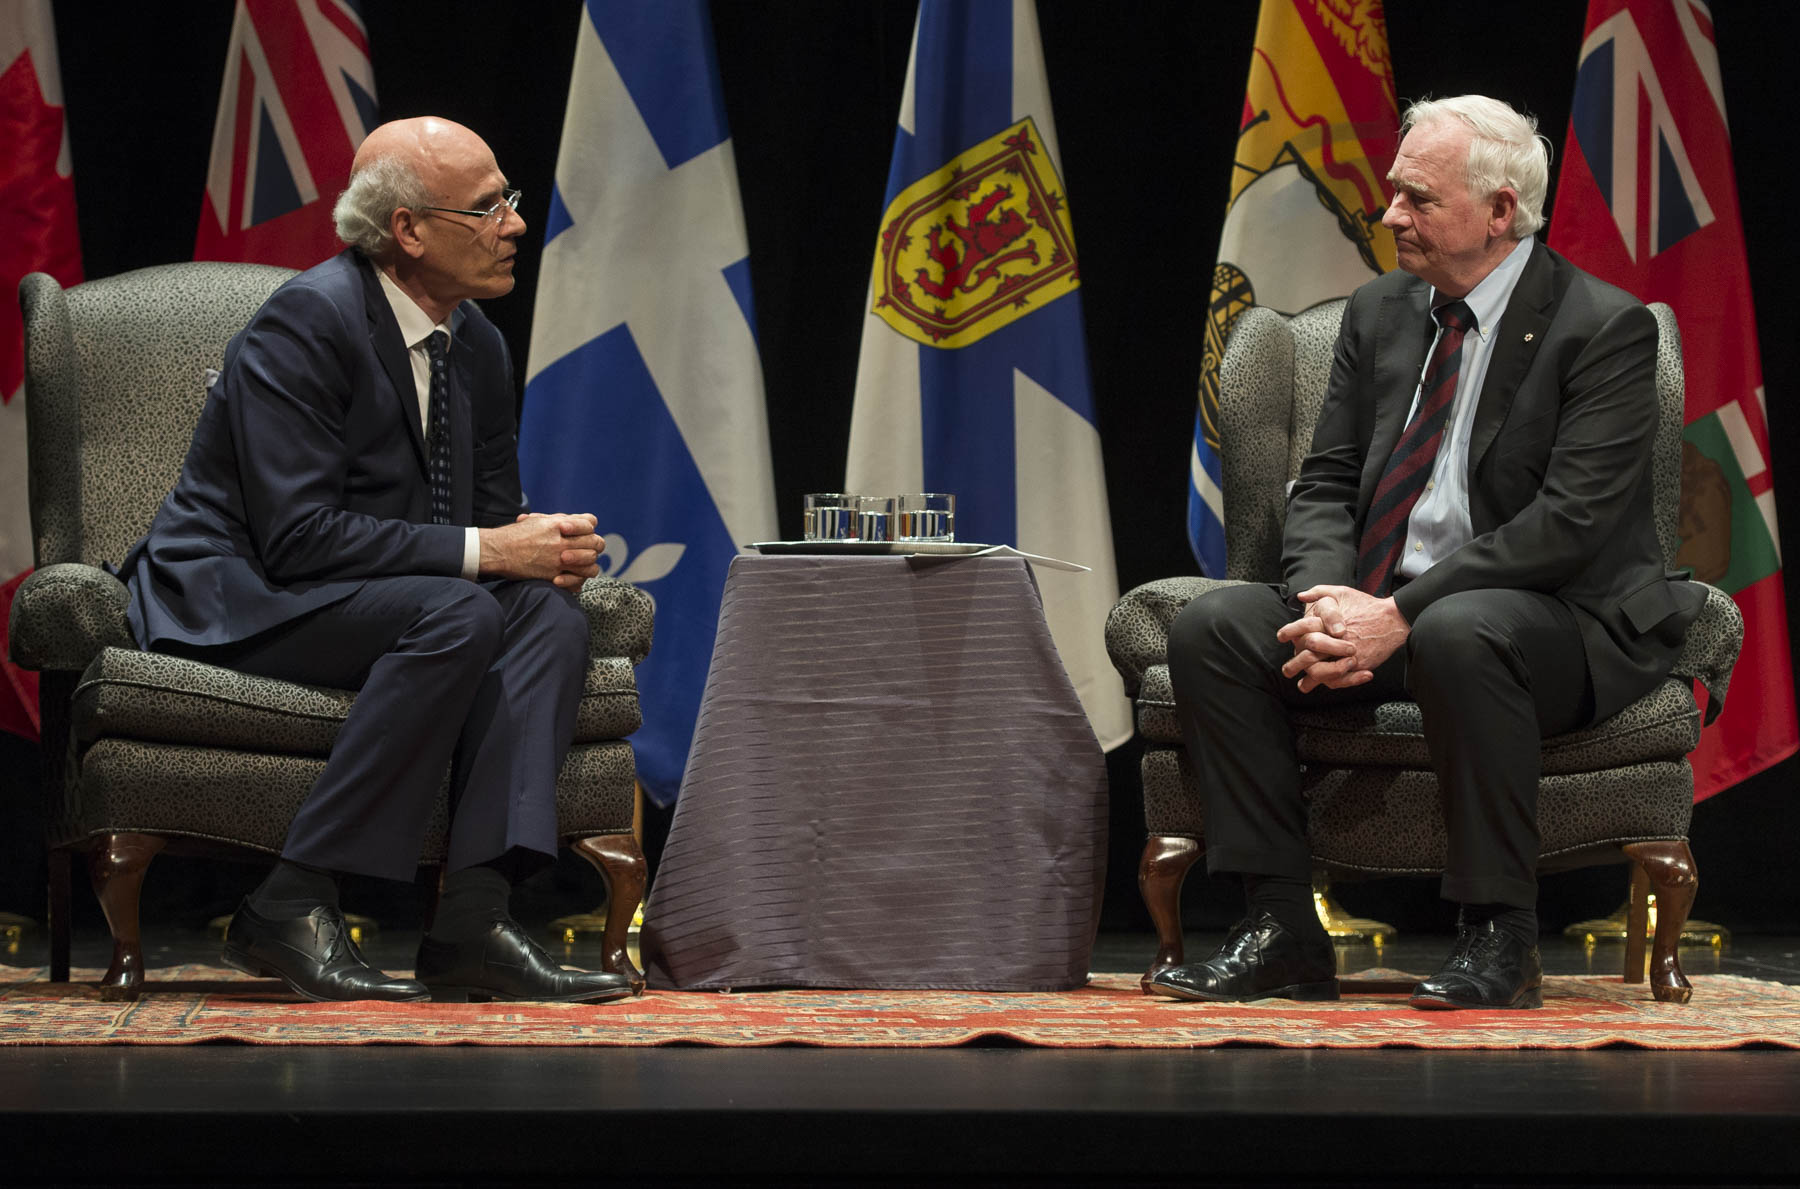 Afterwards, His Excellency and Michael Wernick, Clerk of the Privy Council and Secretary to the Cabinet Privy Council Office had an on-stage conversation.